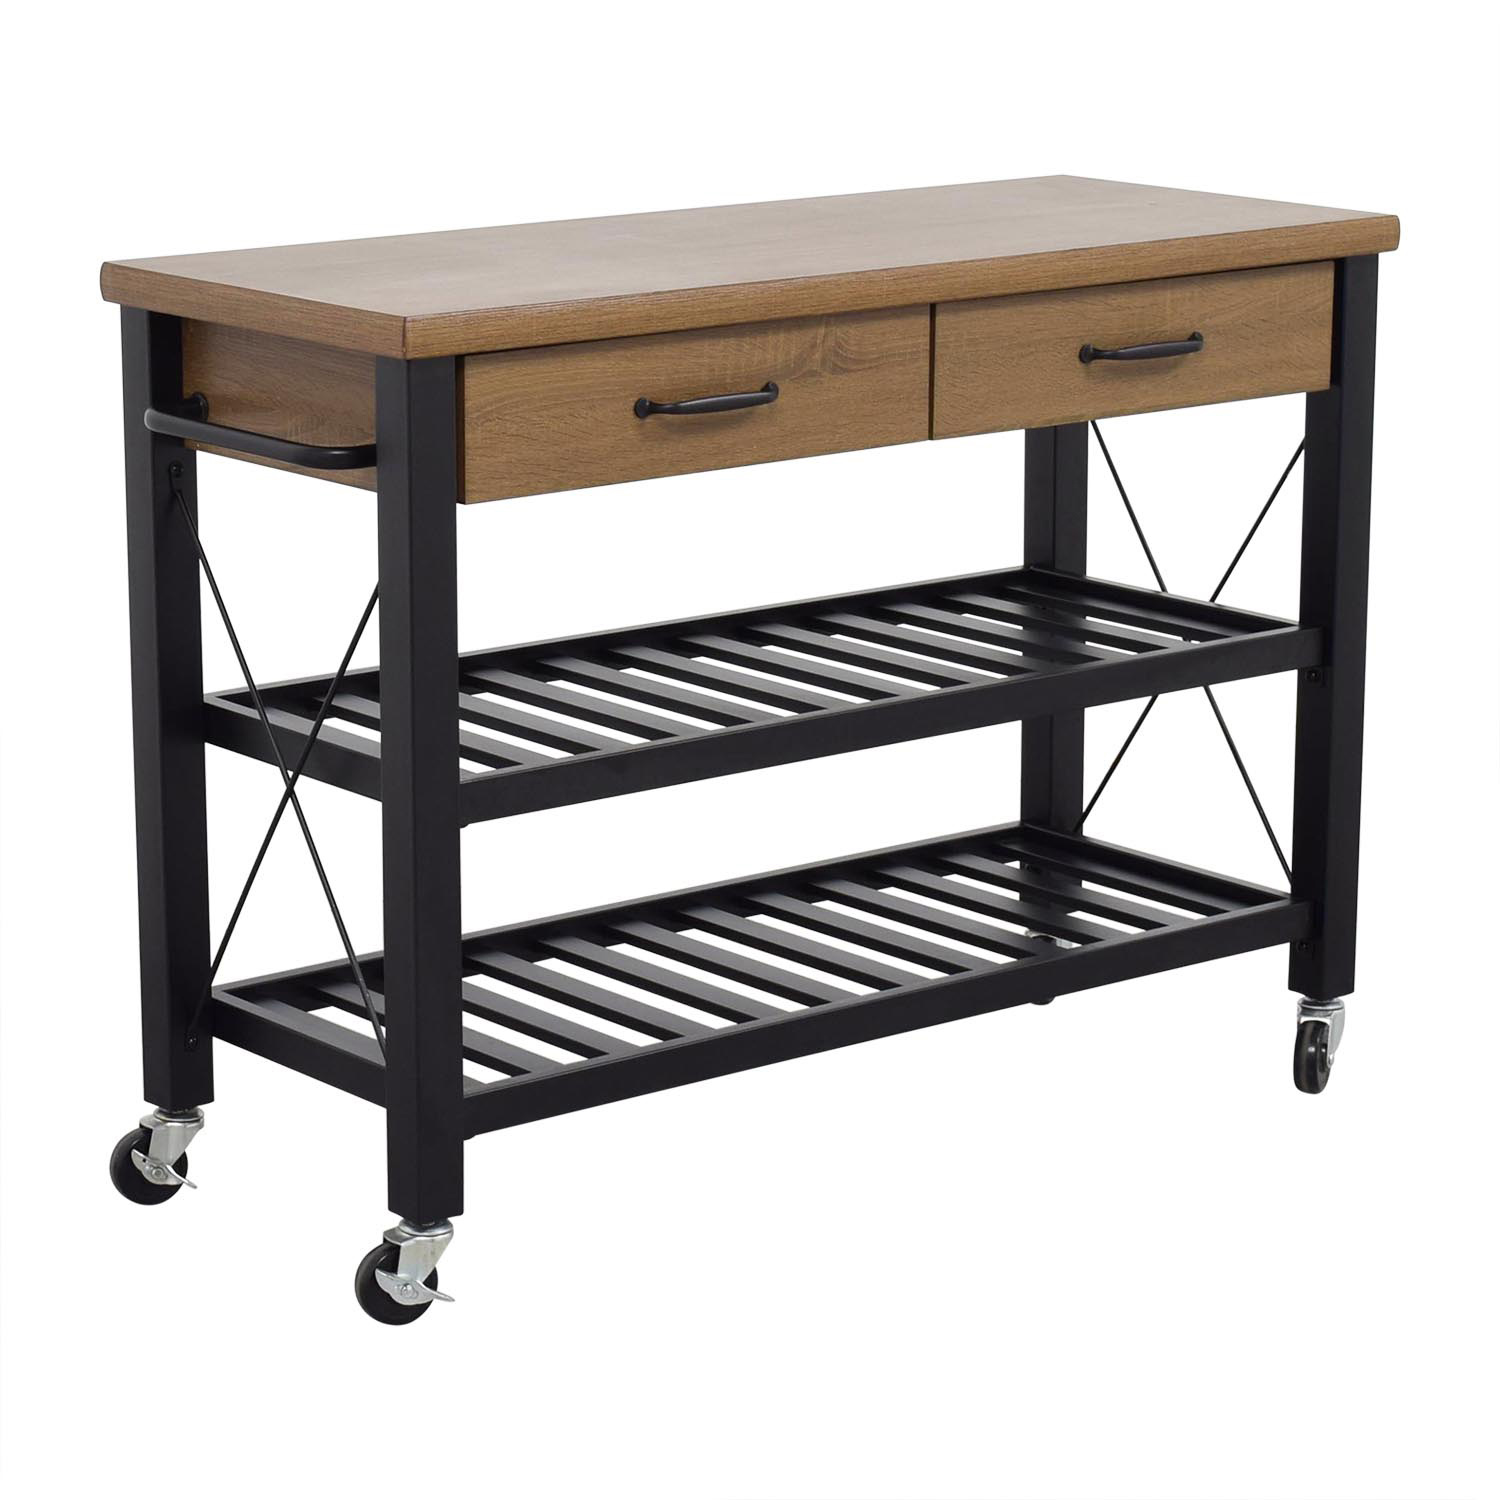 Walmart Kitchen Tables: Walmart Walmart Kitchen Island Cart On Casters